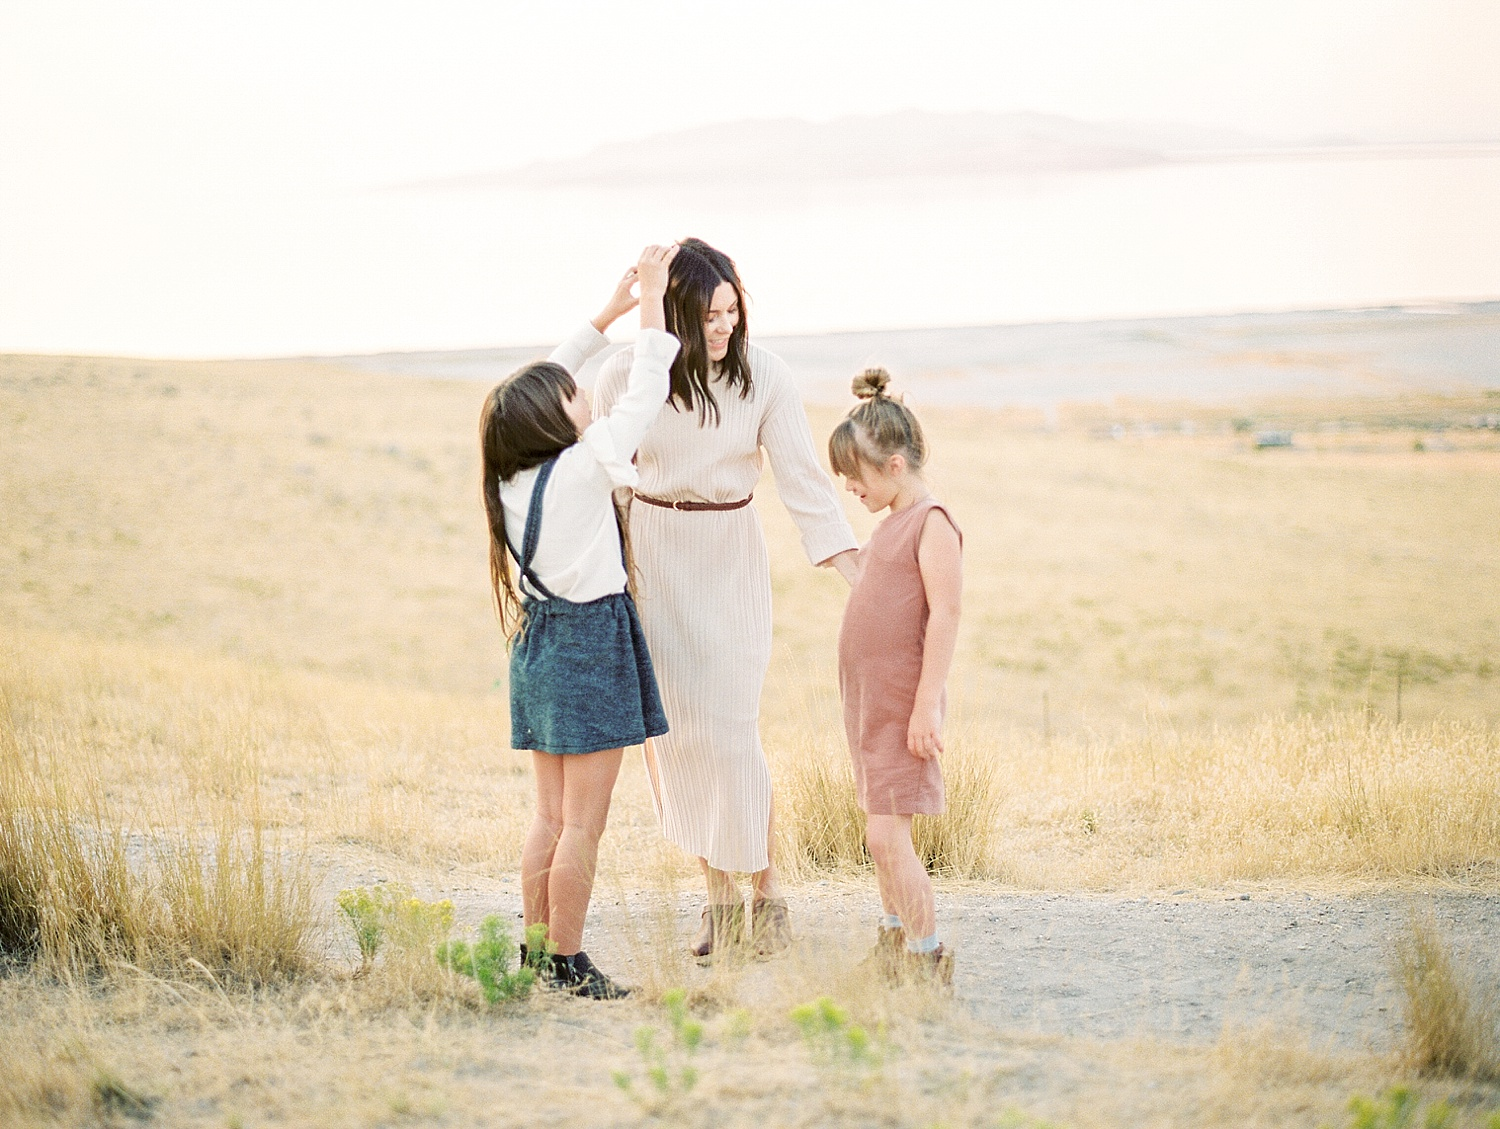 greenapplephotography_0005_utahfamily_magicchildhood.jpg